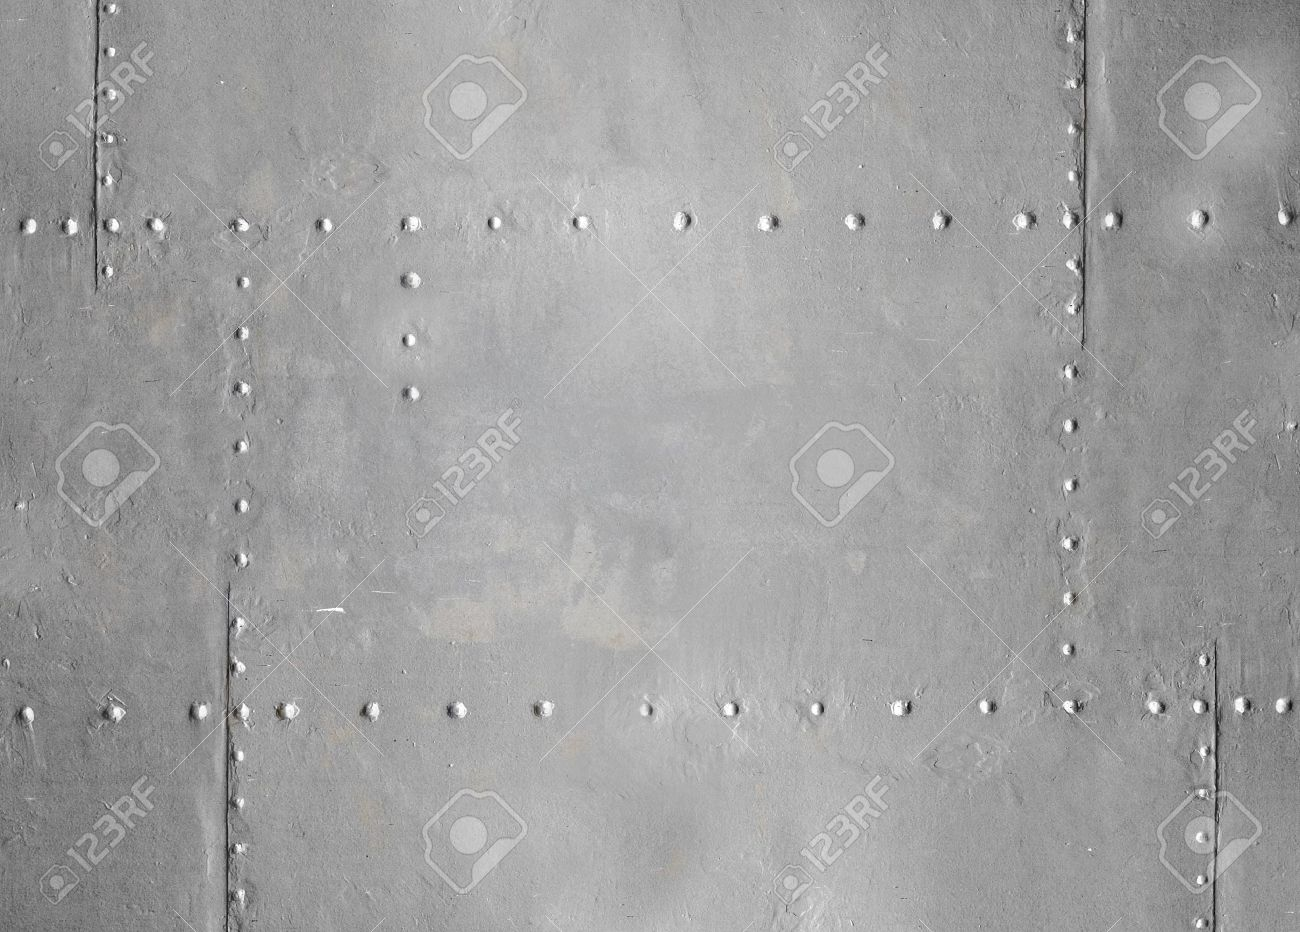 metal wall texture. Abstract Detailed Gray Metal Wall Background Texture With Seams And Rivets  Stock Photo - 17961834